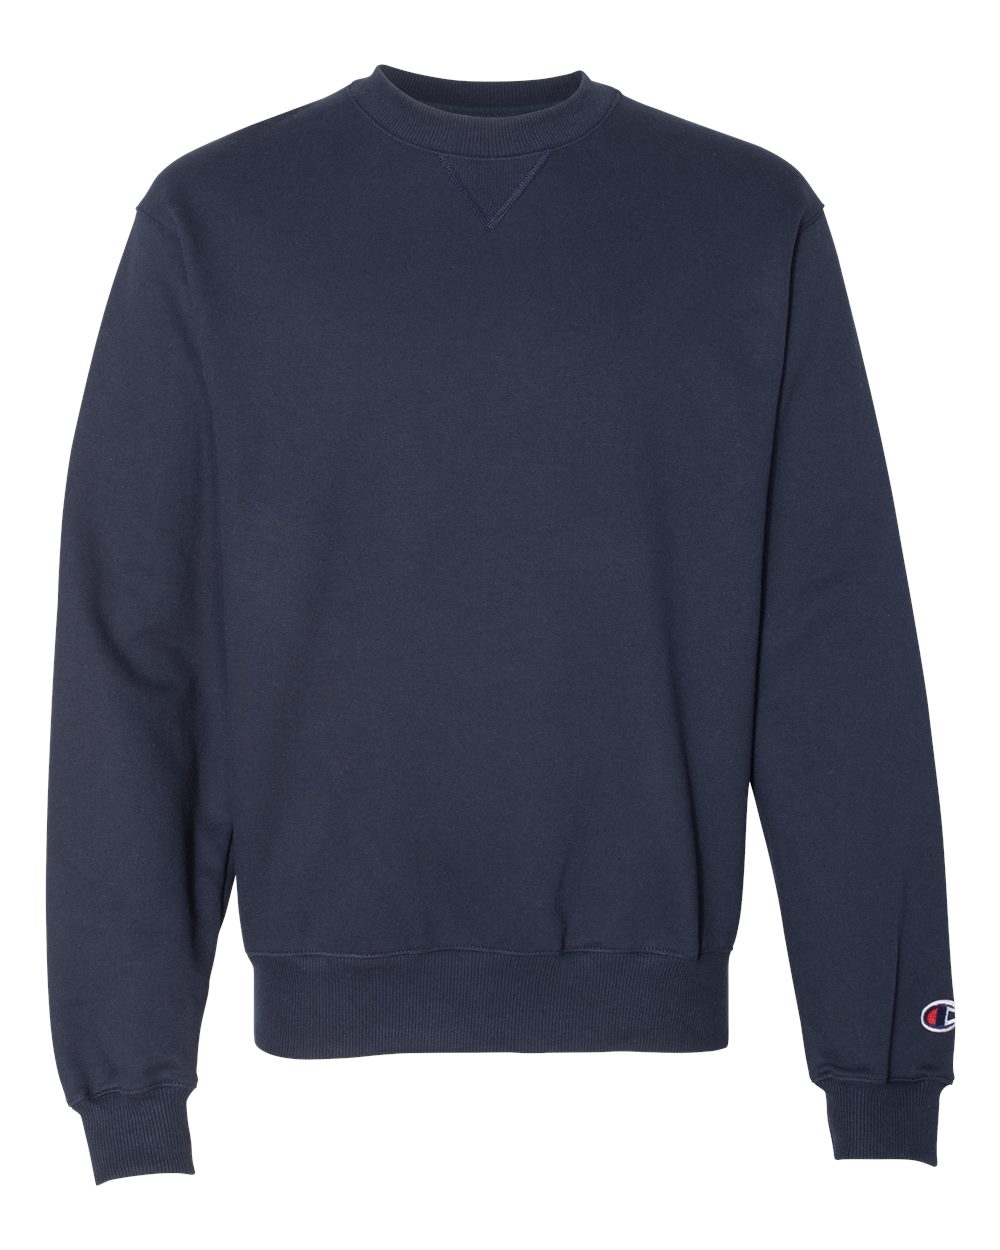 Champion-Mens-Cotton-Max-Crewneck-Sweatshirt-Pullover-S178-up-to-3XL miniature 12